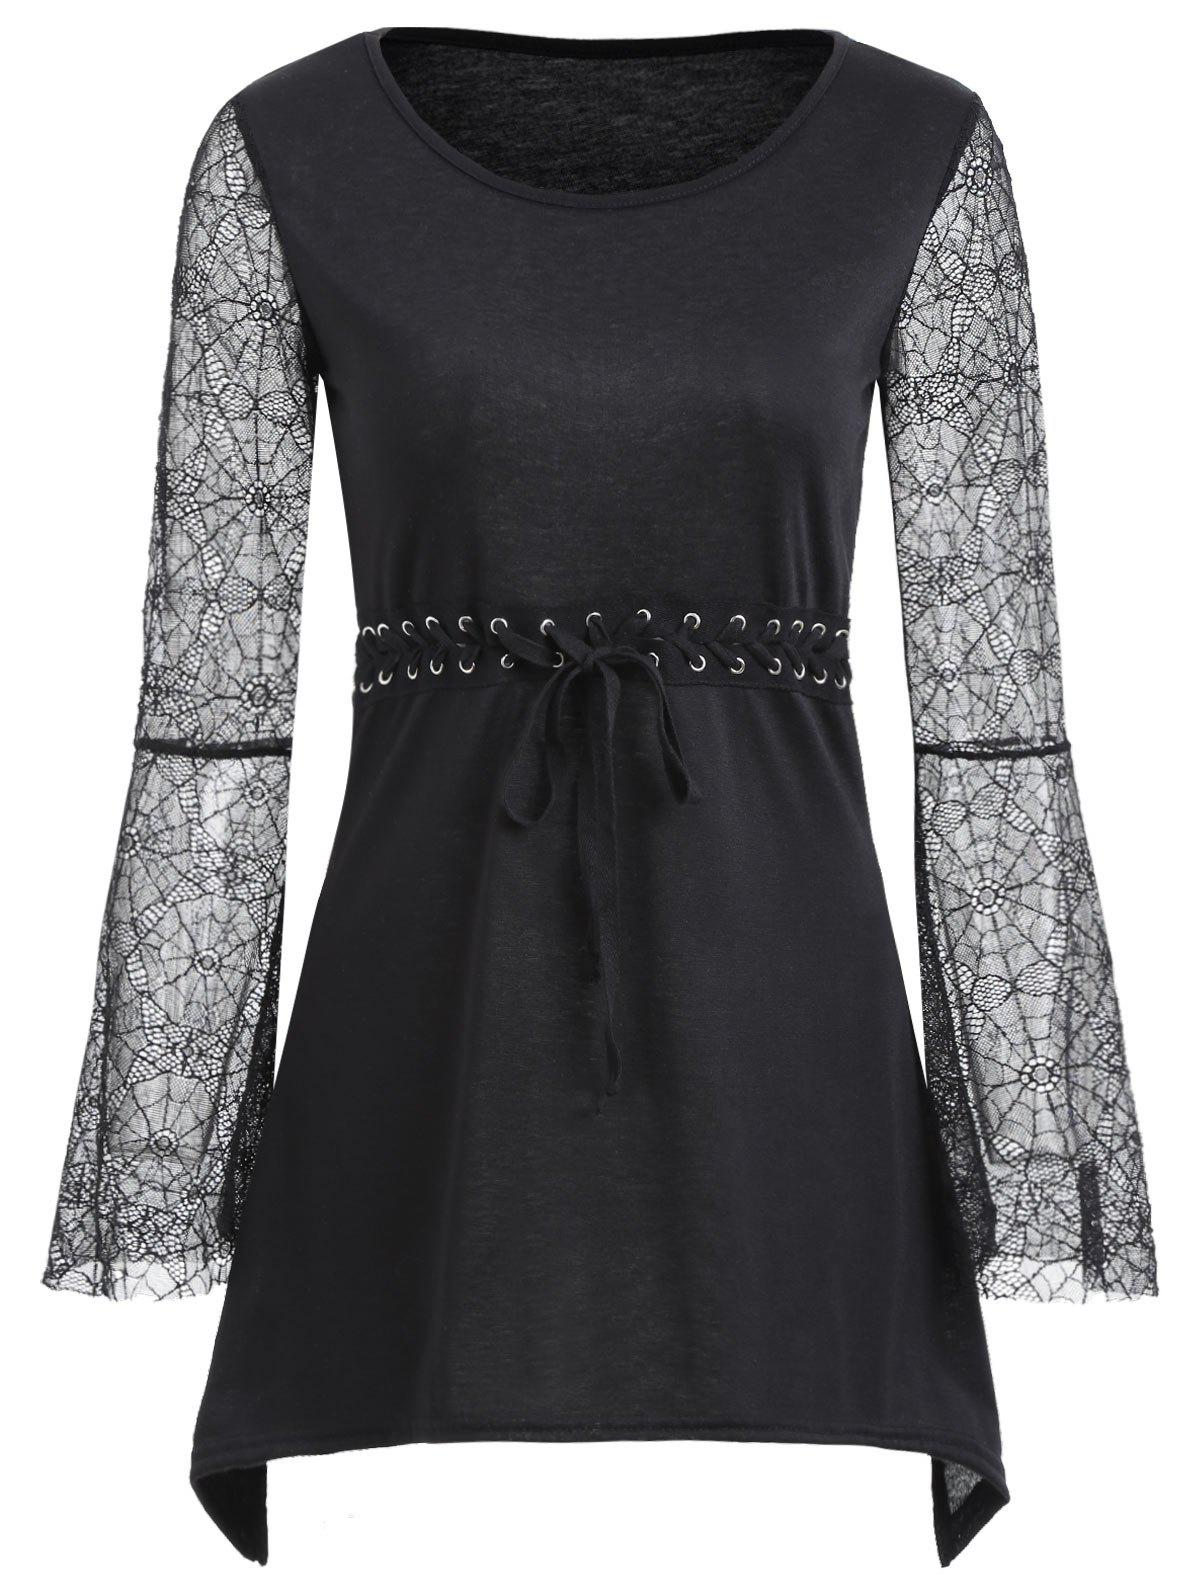 Spider Lace Flare Sleeve Lace-up Tunic Top от Dresslily.com INT